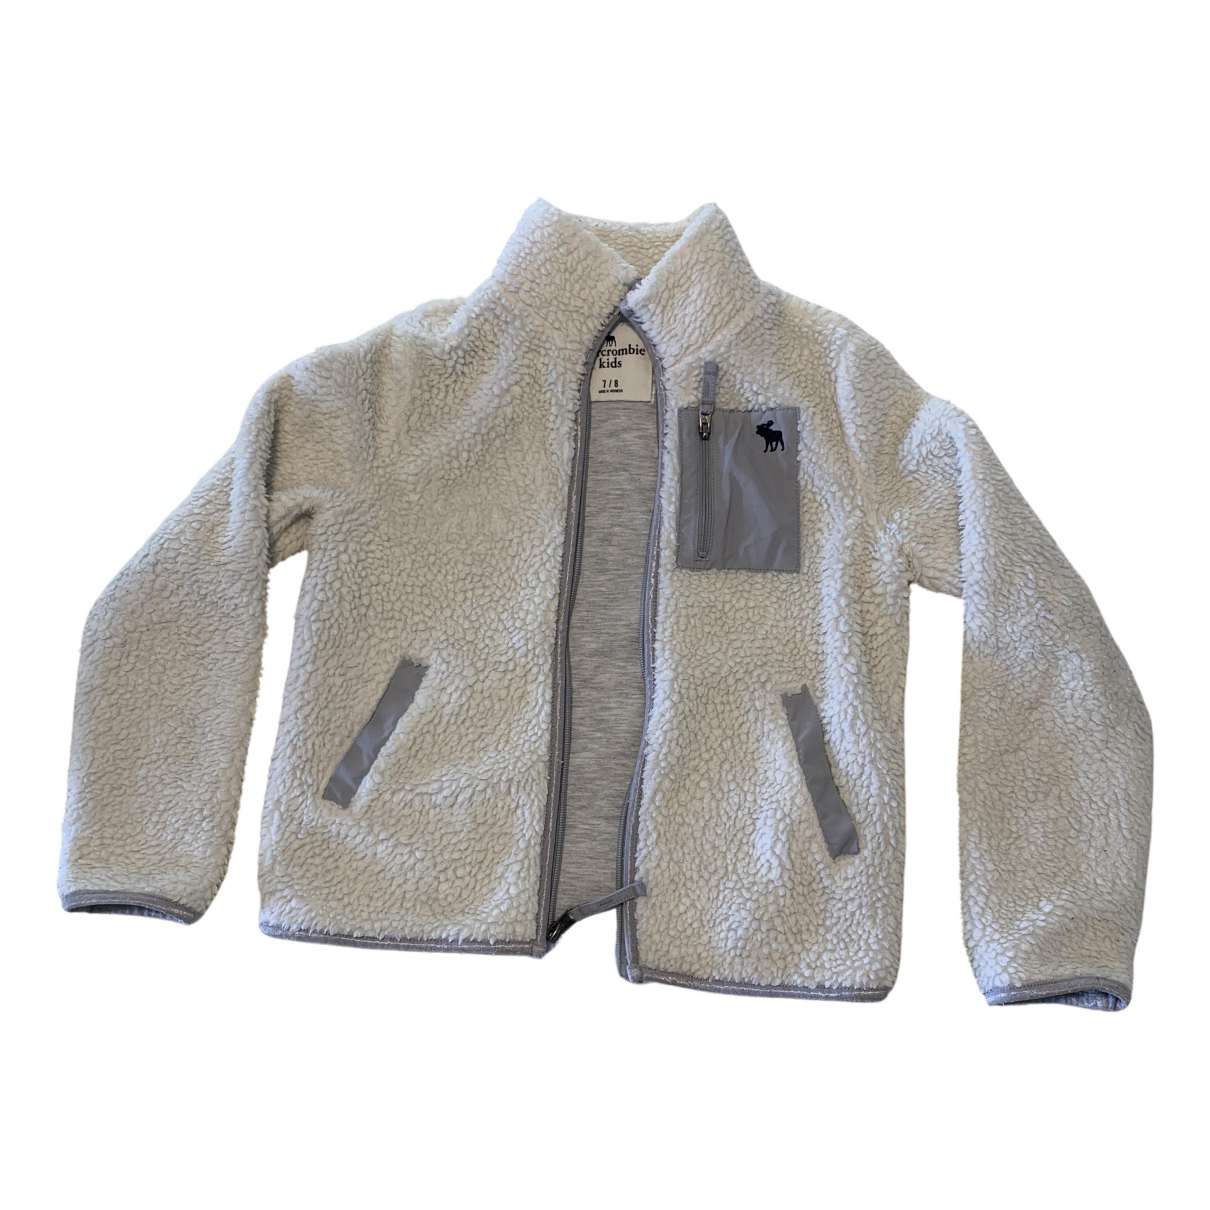 Abercrombie & Fitch \N White Cotton Knitwear for Kids 8 years - up to 128cm FR